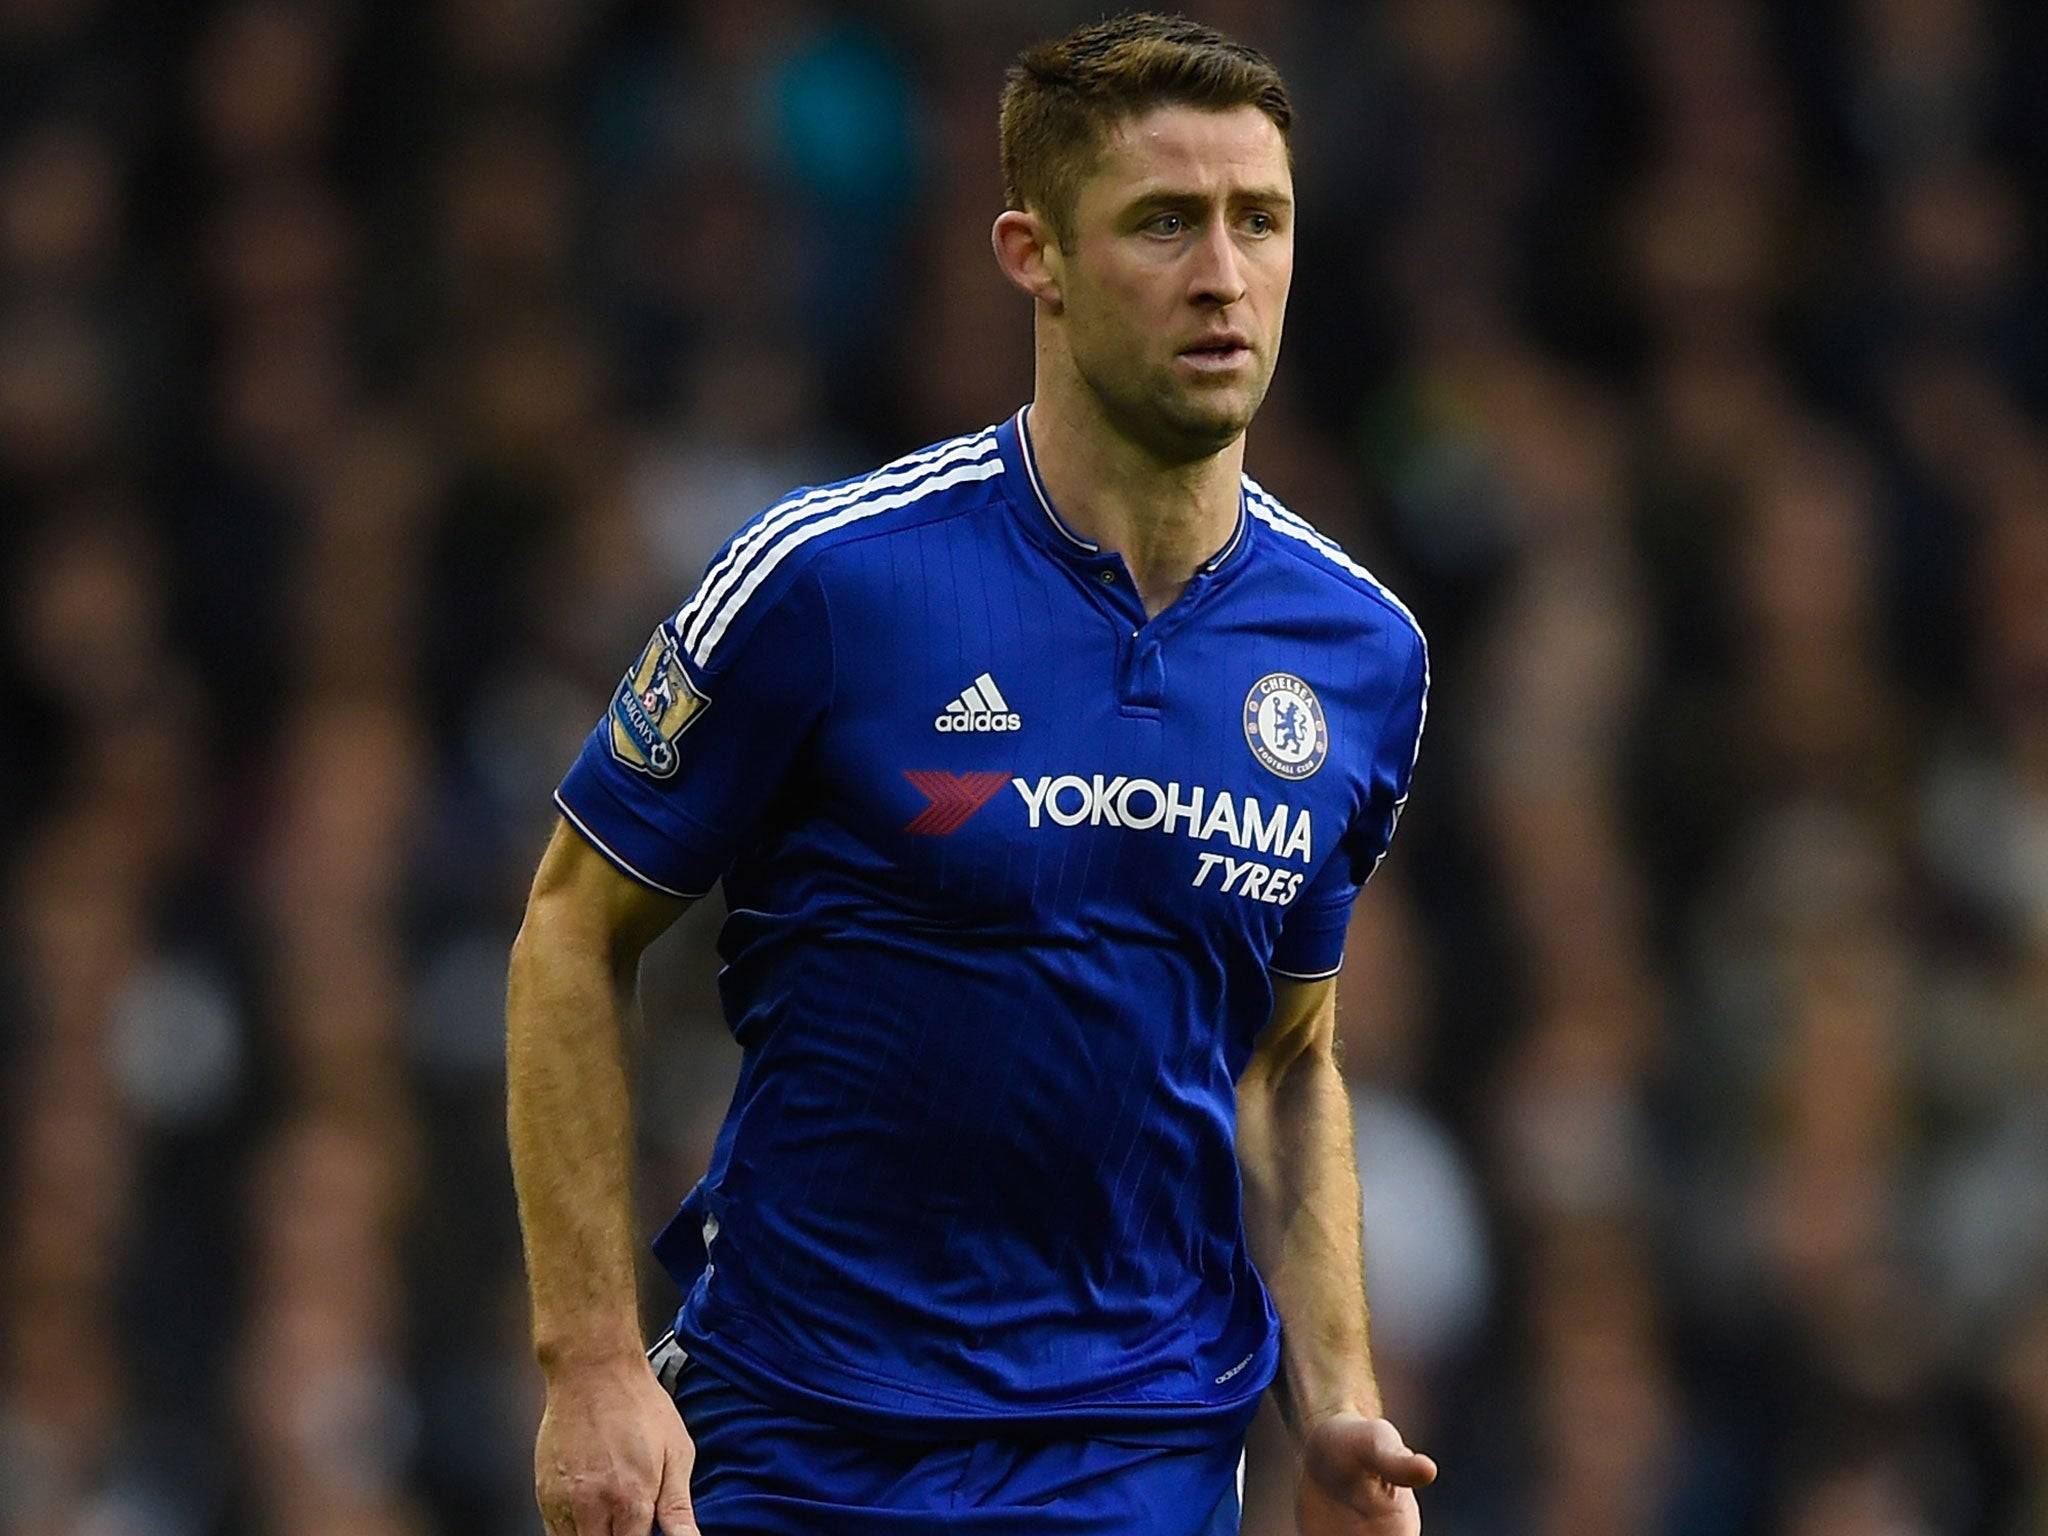 Gary Cahill Chelsea Future: England Defender Will Not Be